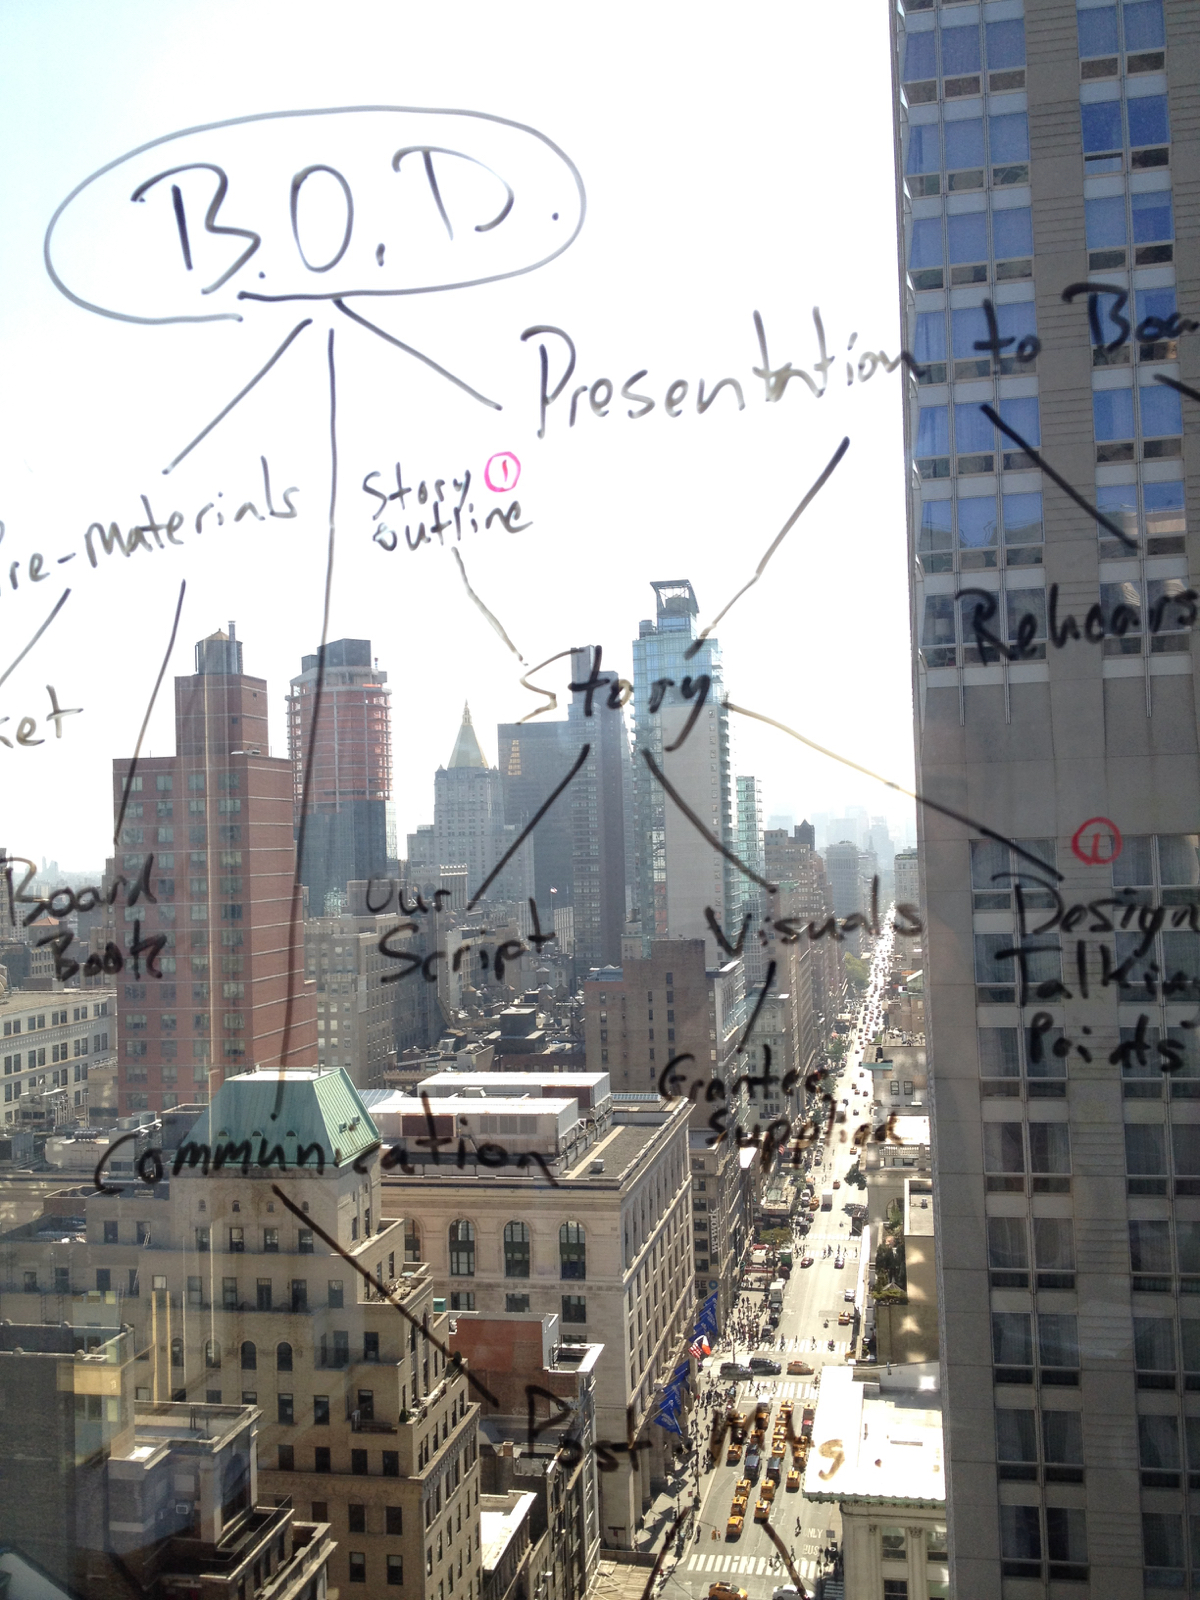 agile product management uses many tools to help visualize